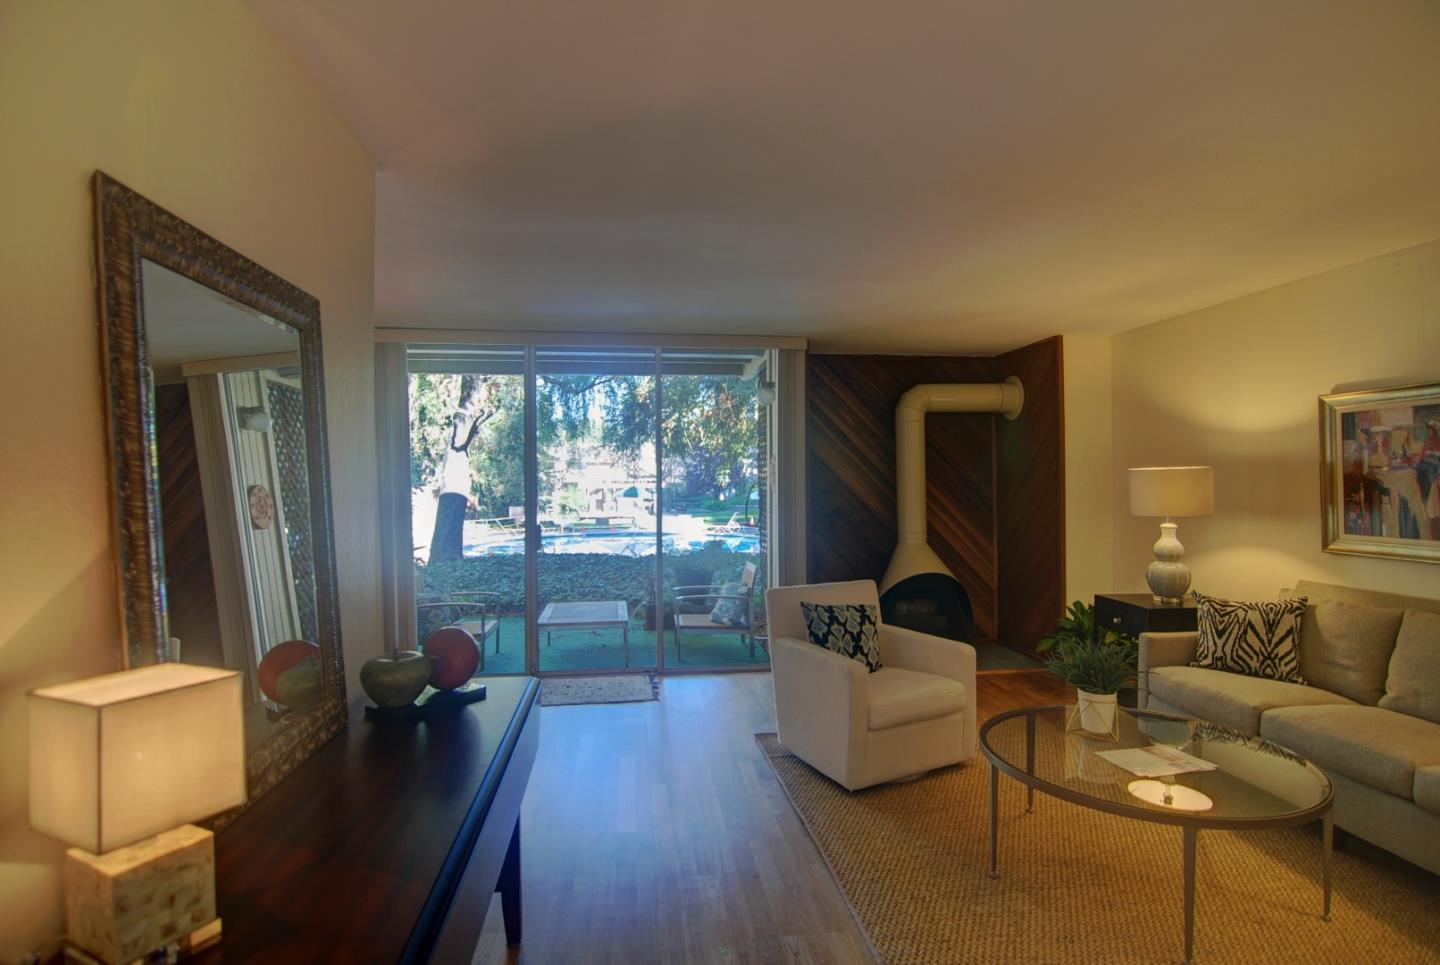 505 CYPRESS POINT DR 214, MOUNTAIN VIEW, CA 94043